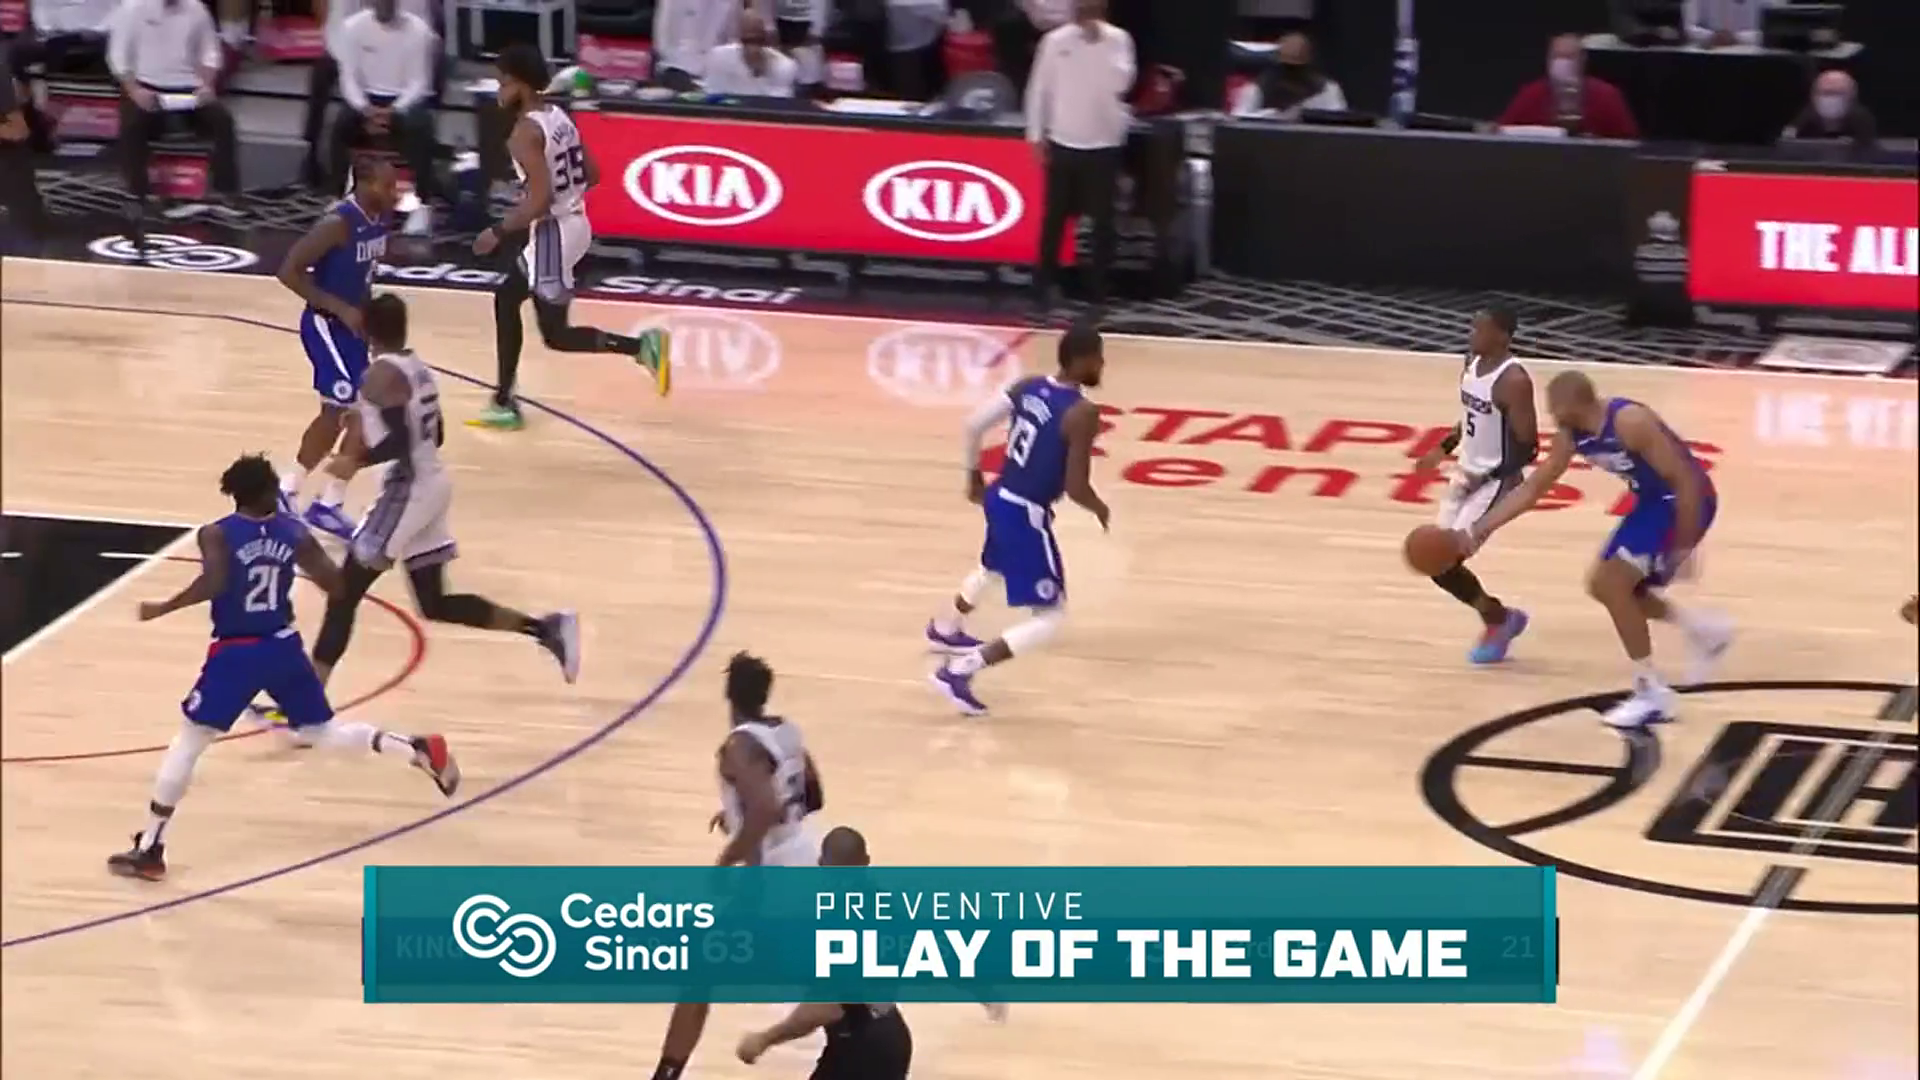 Cedars-Sinai Preventive Play of the Game | Clippers vs Kings (1.20.21)